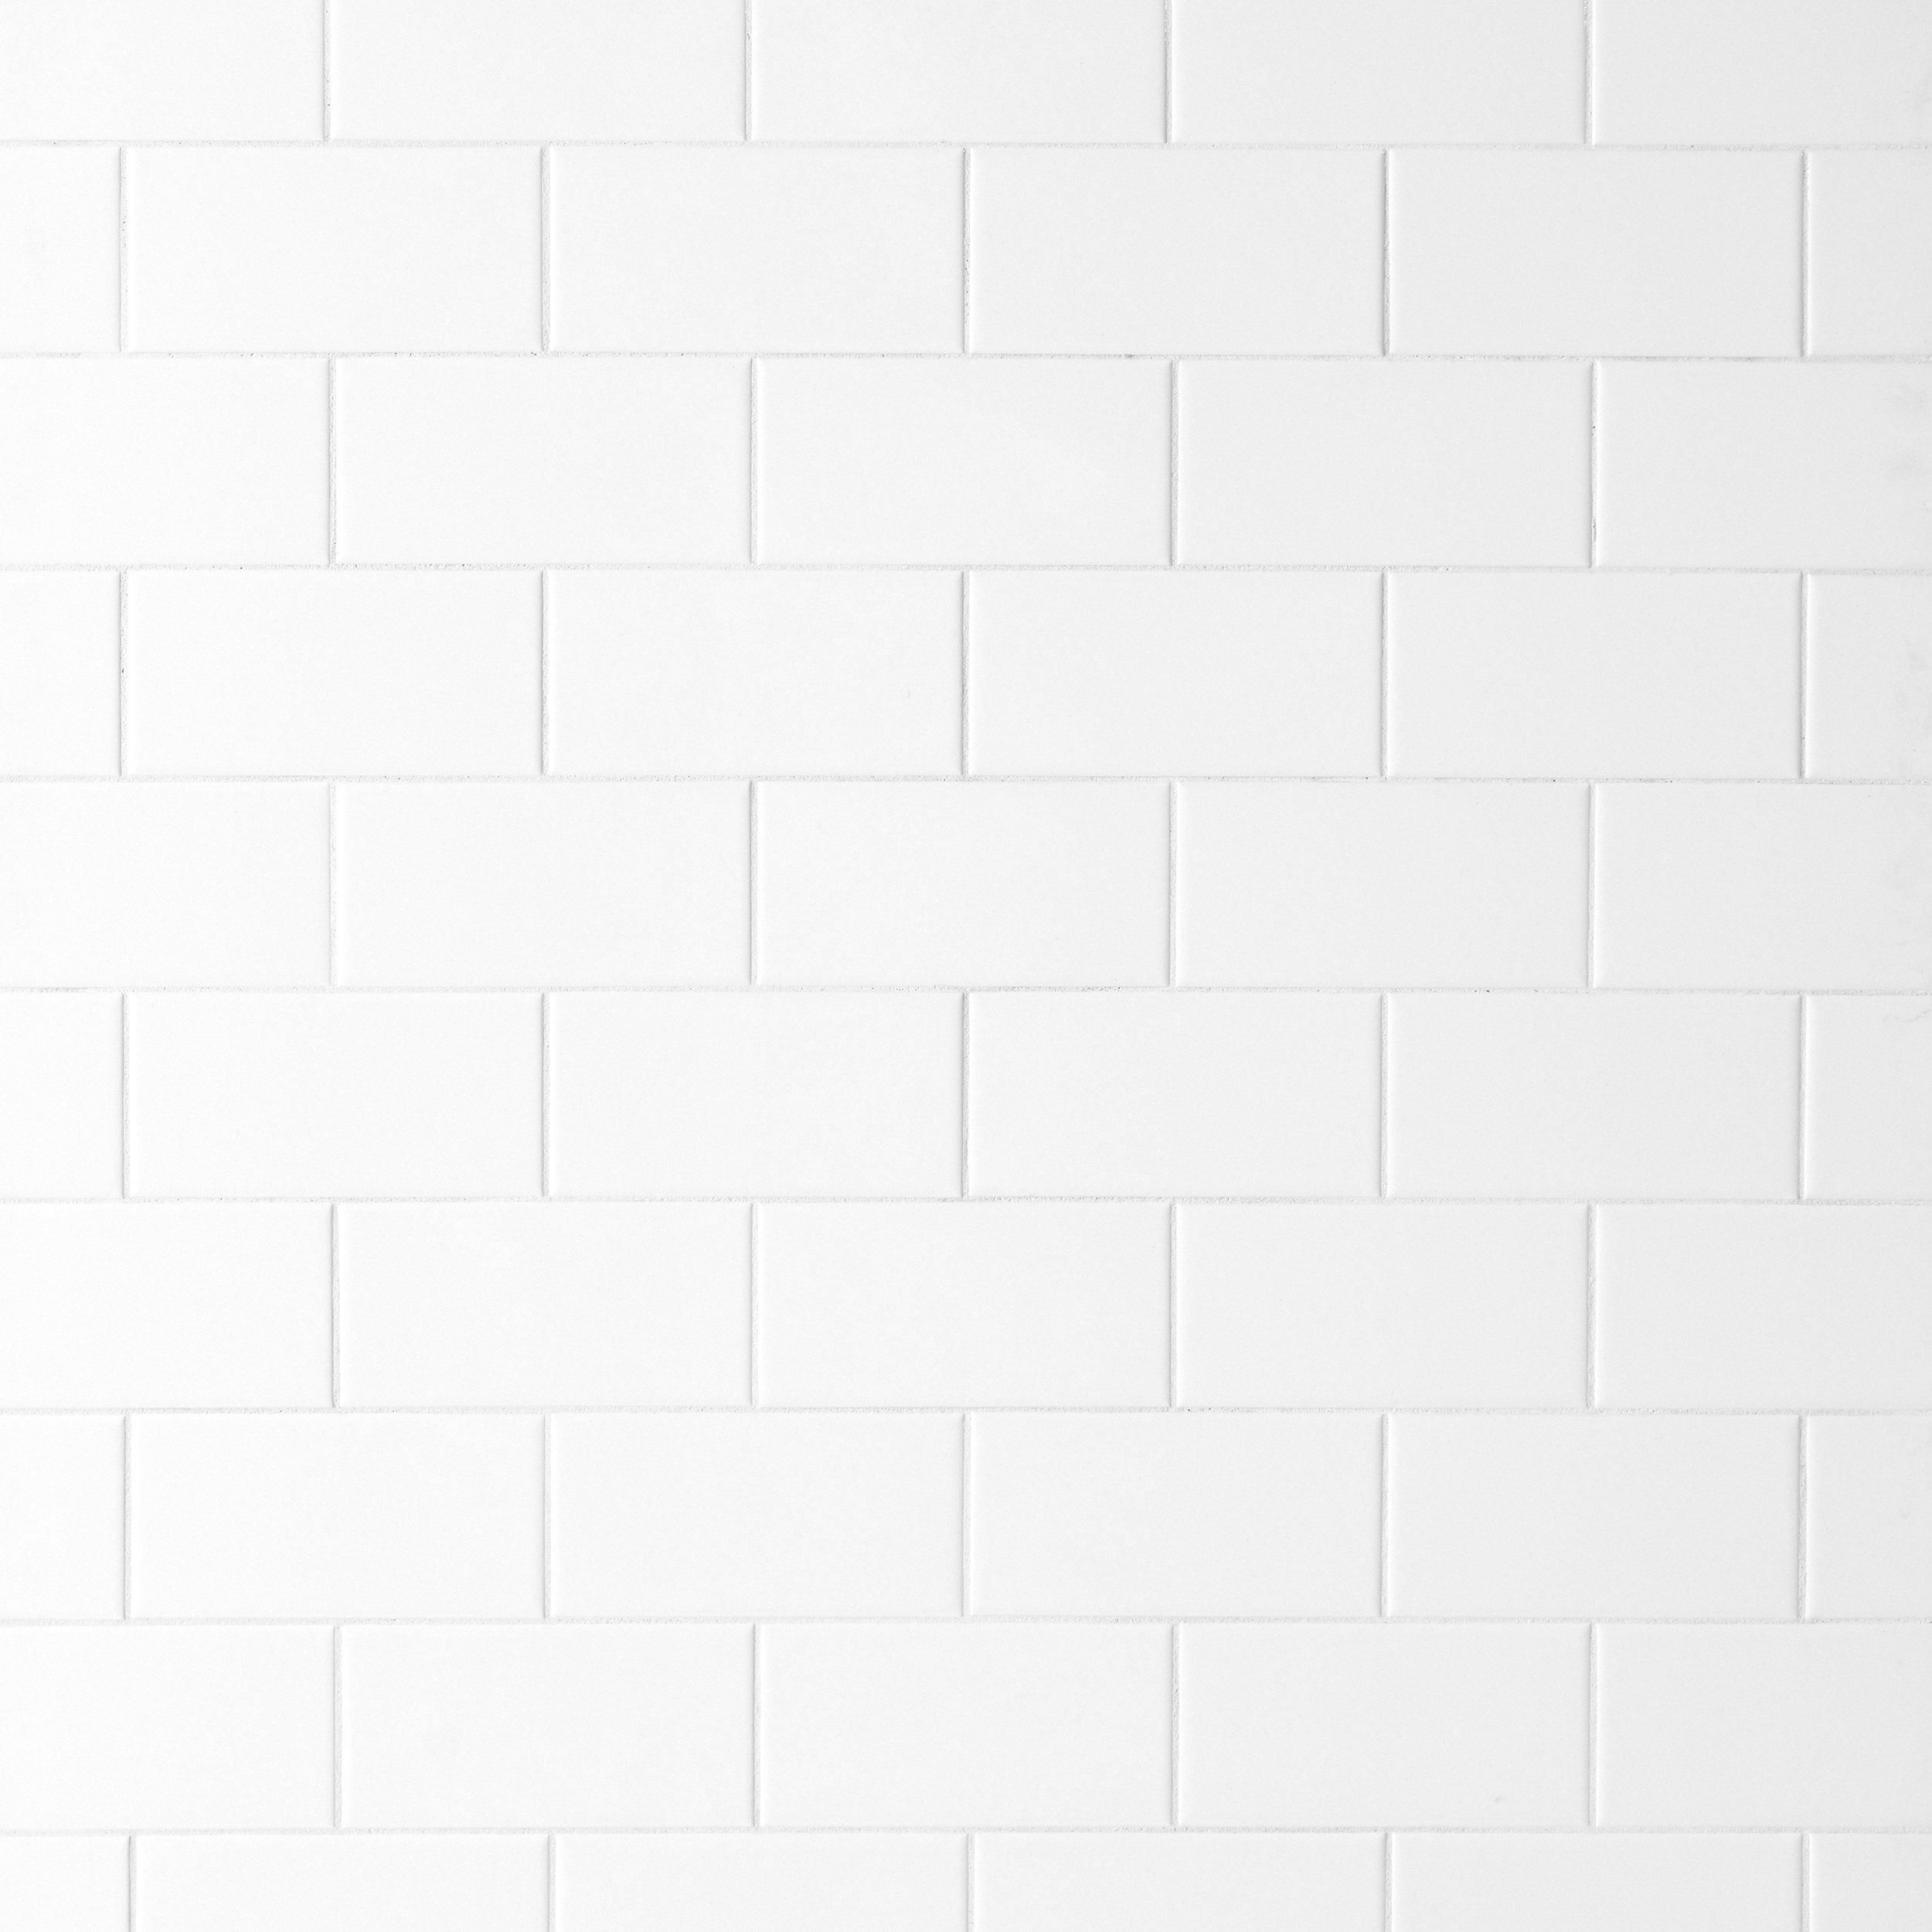 Bright White Ice 3x6 Subway Ceramic Wall Tile At Floor Decor 15 Cents Each Ceramic Wall Tiles Wall Tiles Floor Decor